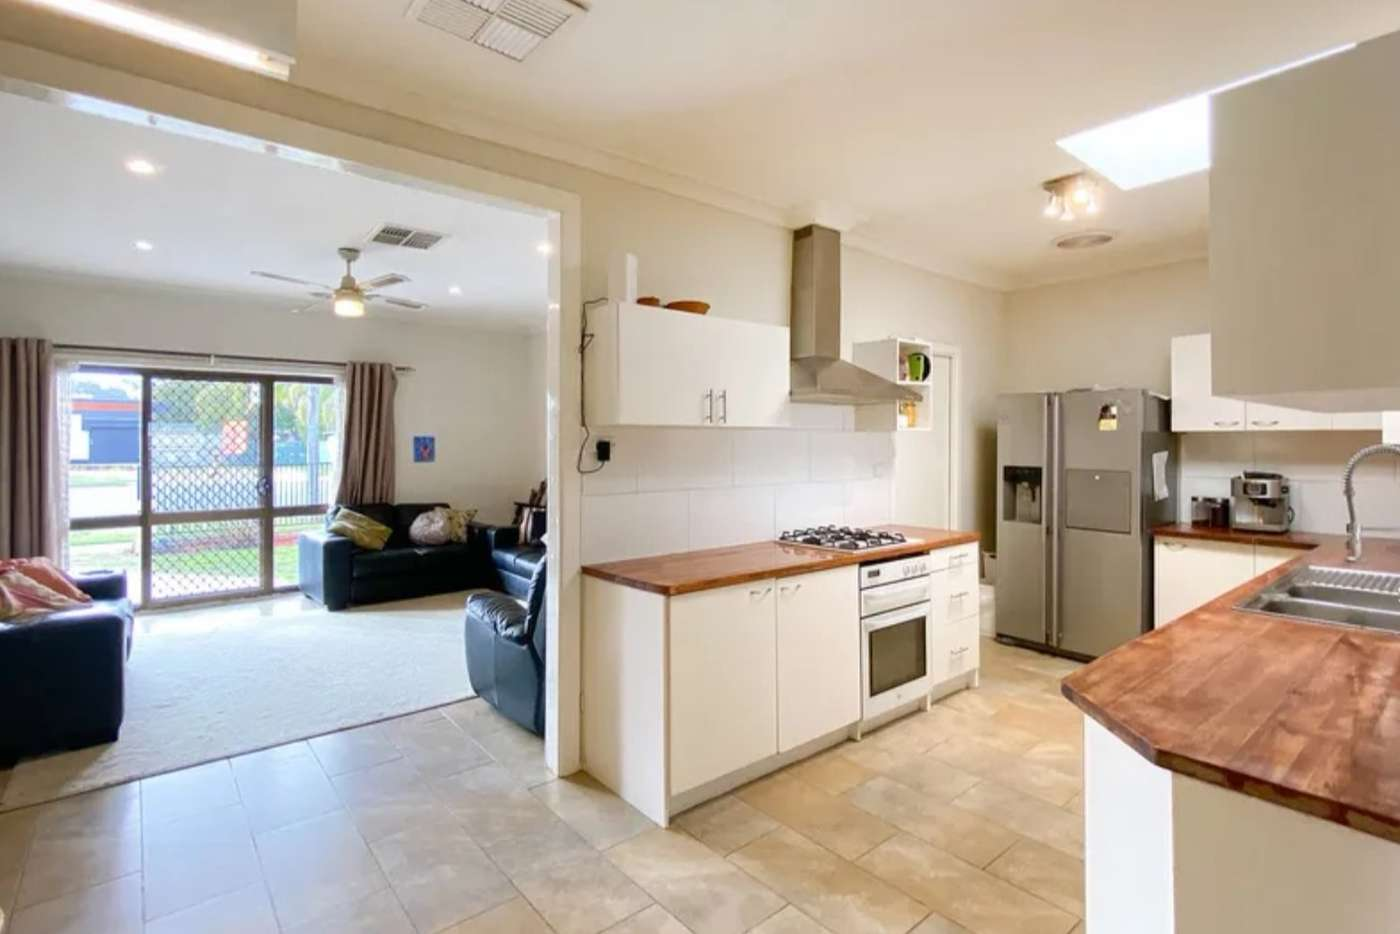 Sixth view of Homely house listing, 315 Union Road, Lavington NSW 2641